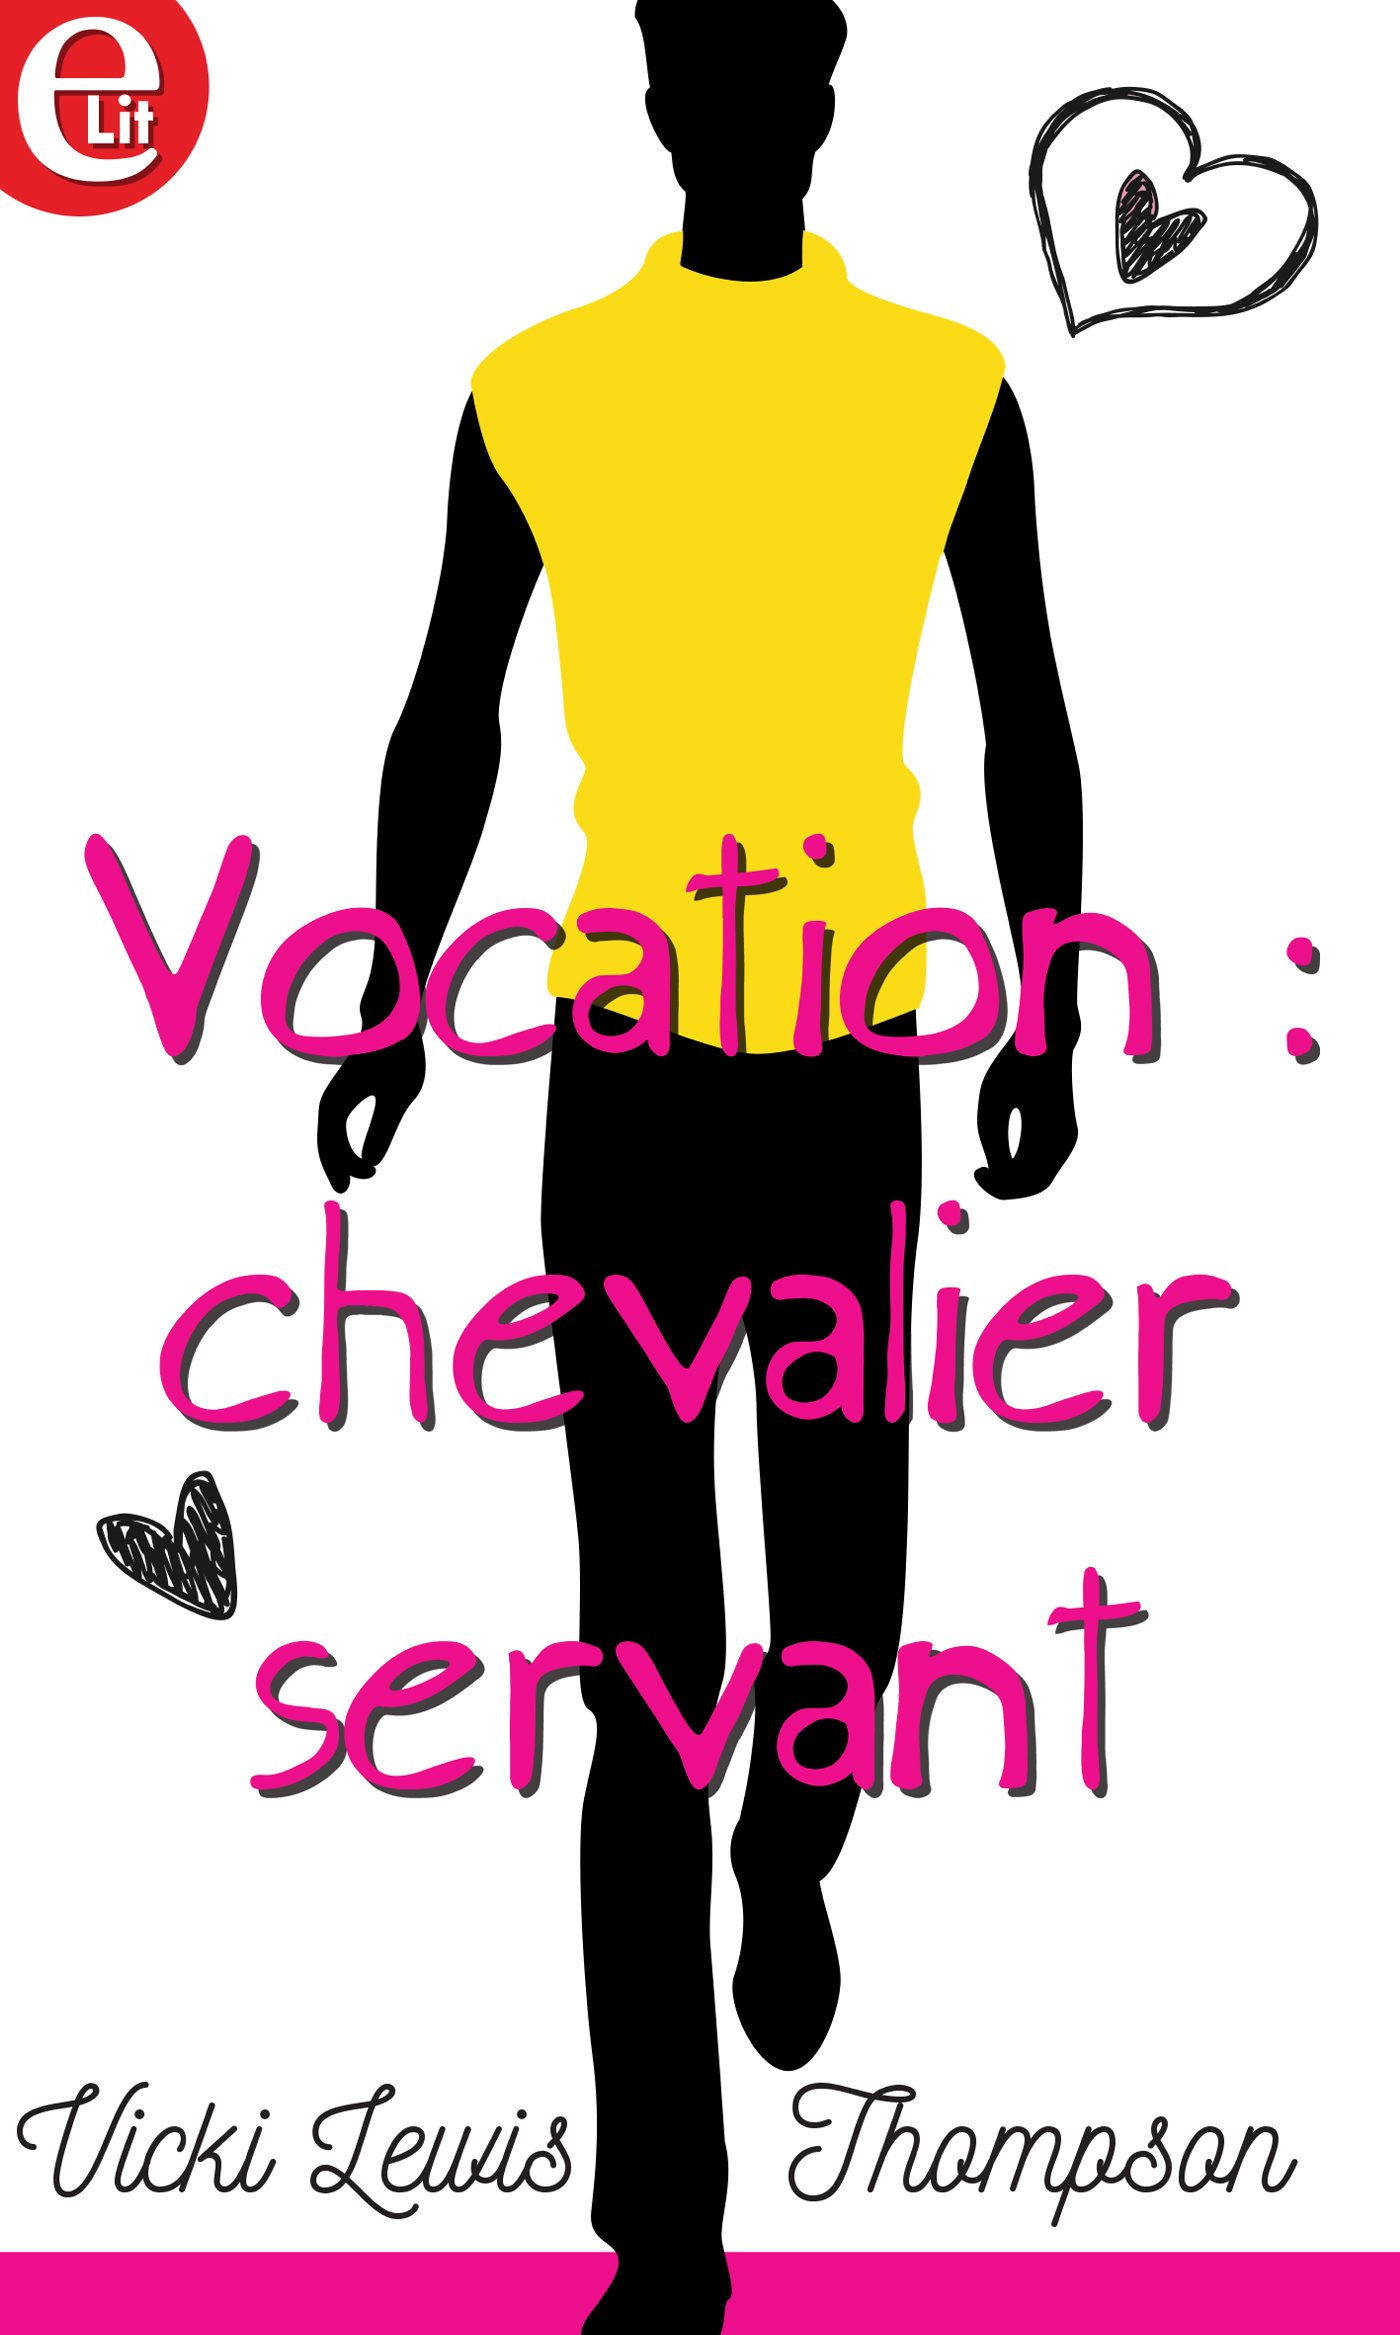 Vocation : chevalier servant